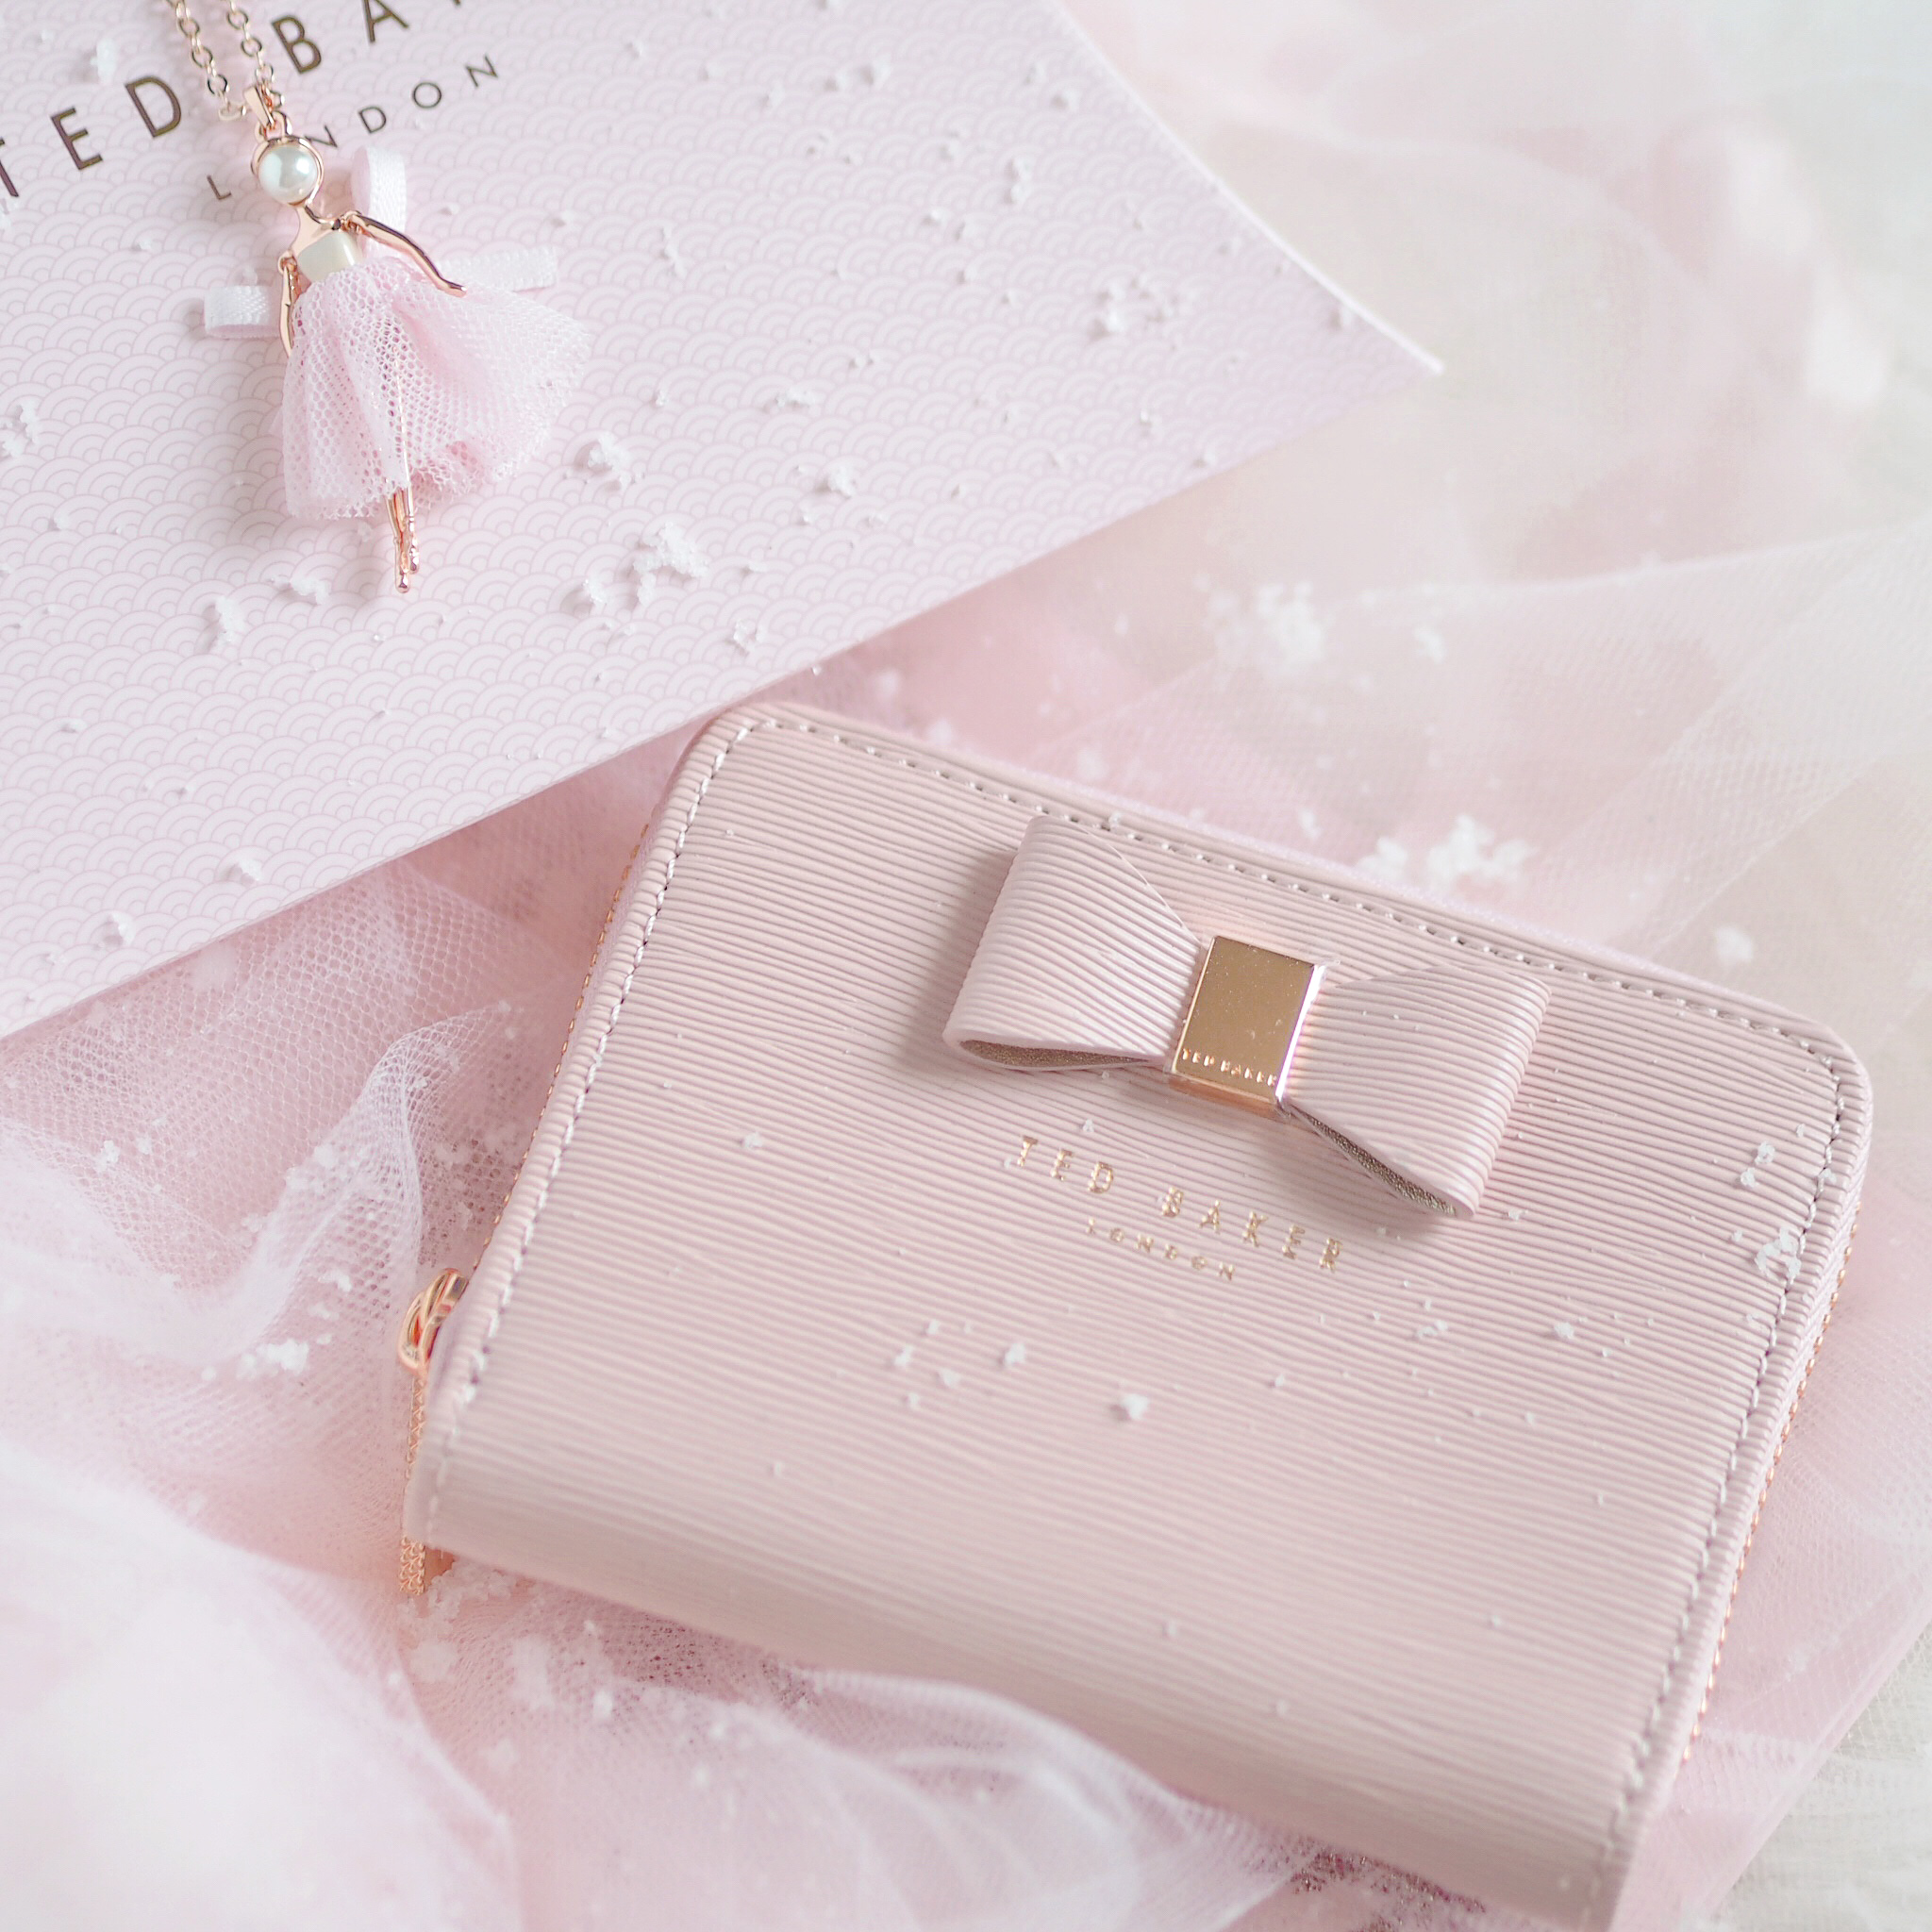 Seasons Treatings: Perfectly Pretty Christmas Gift Ideas For Her, Ted Baker Bow Purse